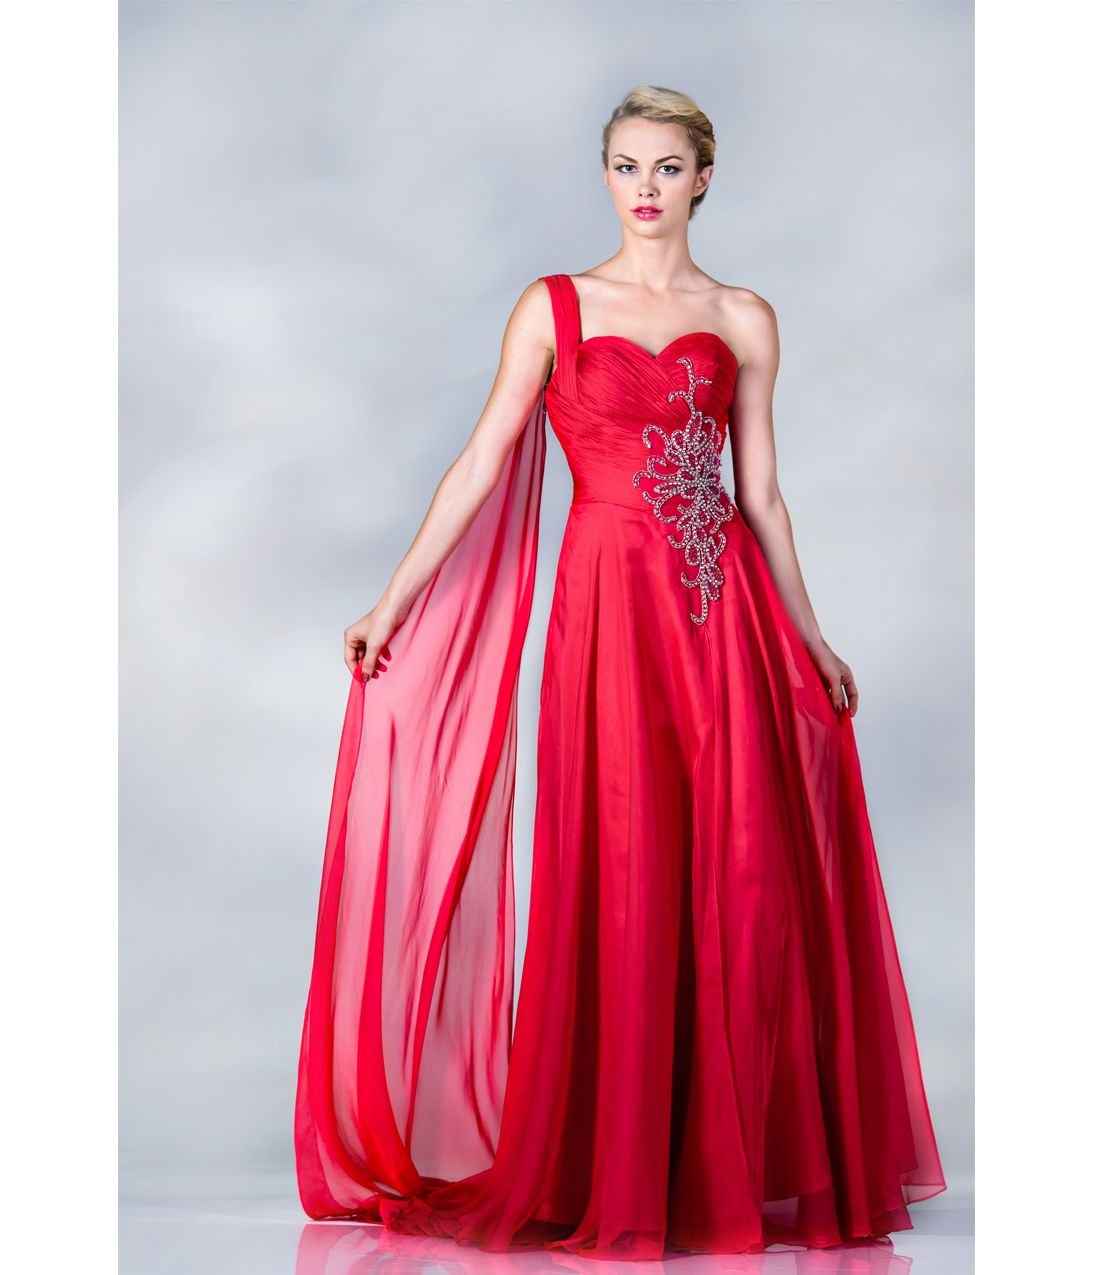 Unique Vintage | Unique vintage, Vintage prom and Retro dress